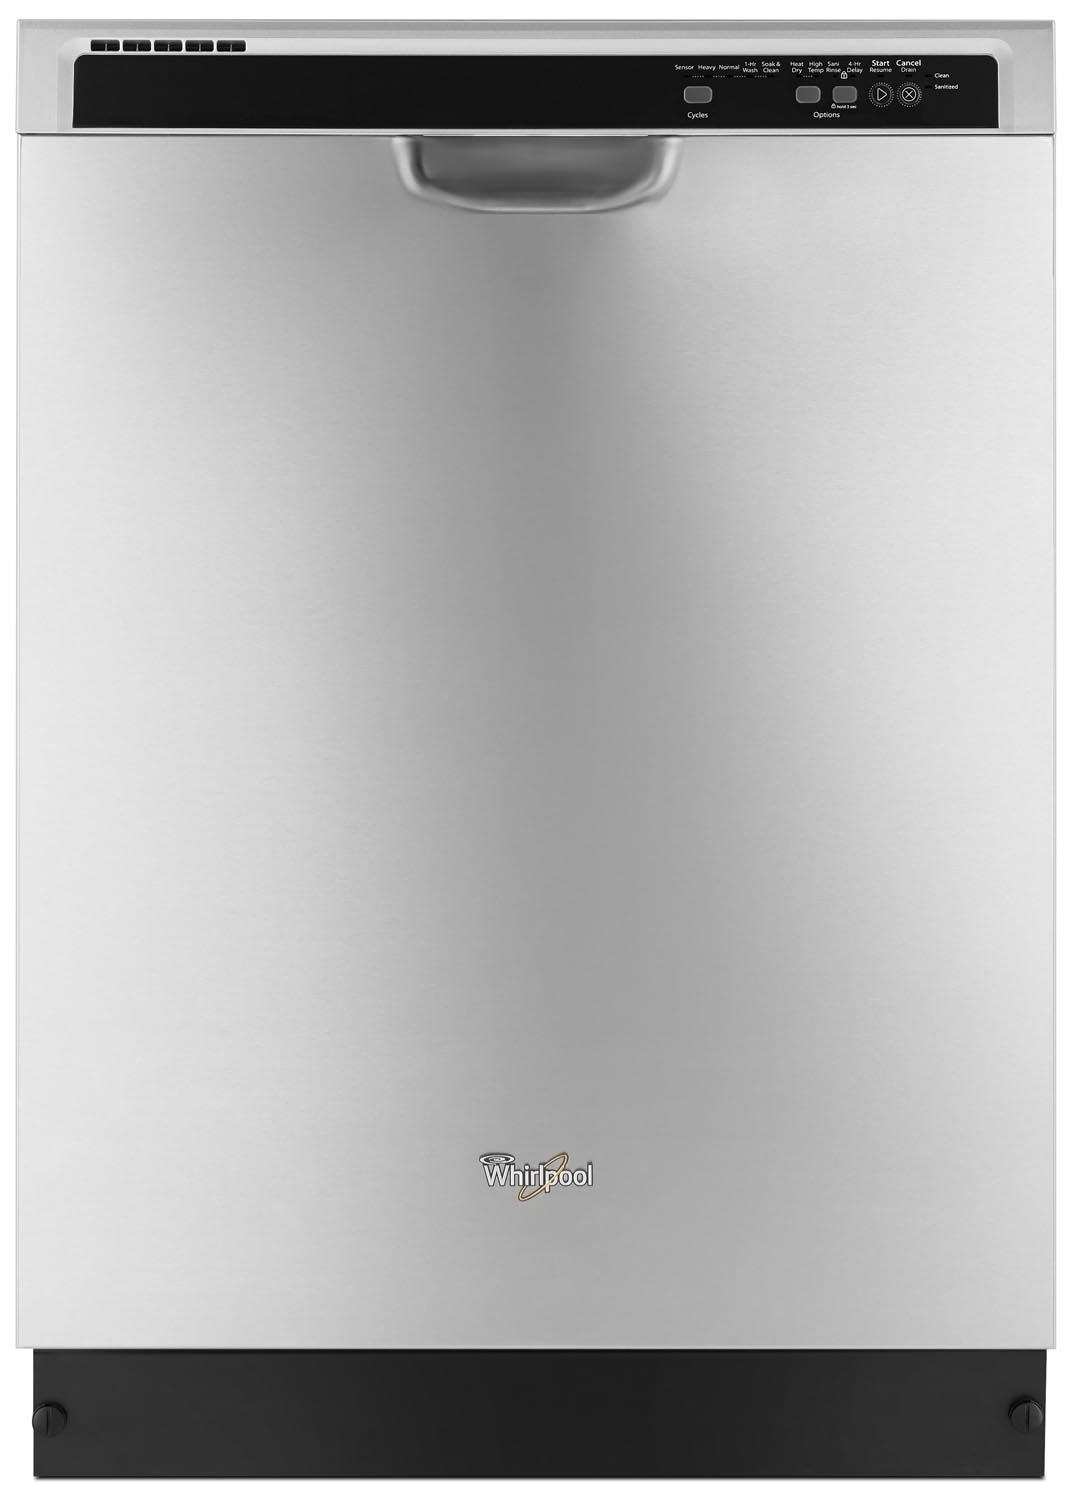 "Clean-Up - Whirlpool Stainless Steel 24"" Dishwasher - WDF540PADM"